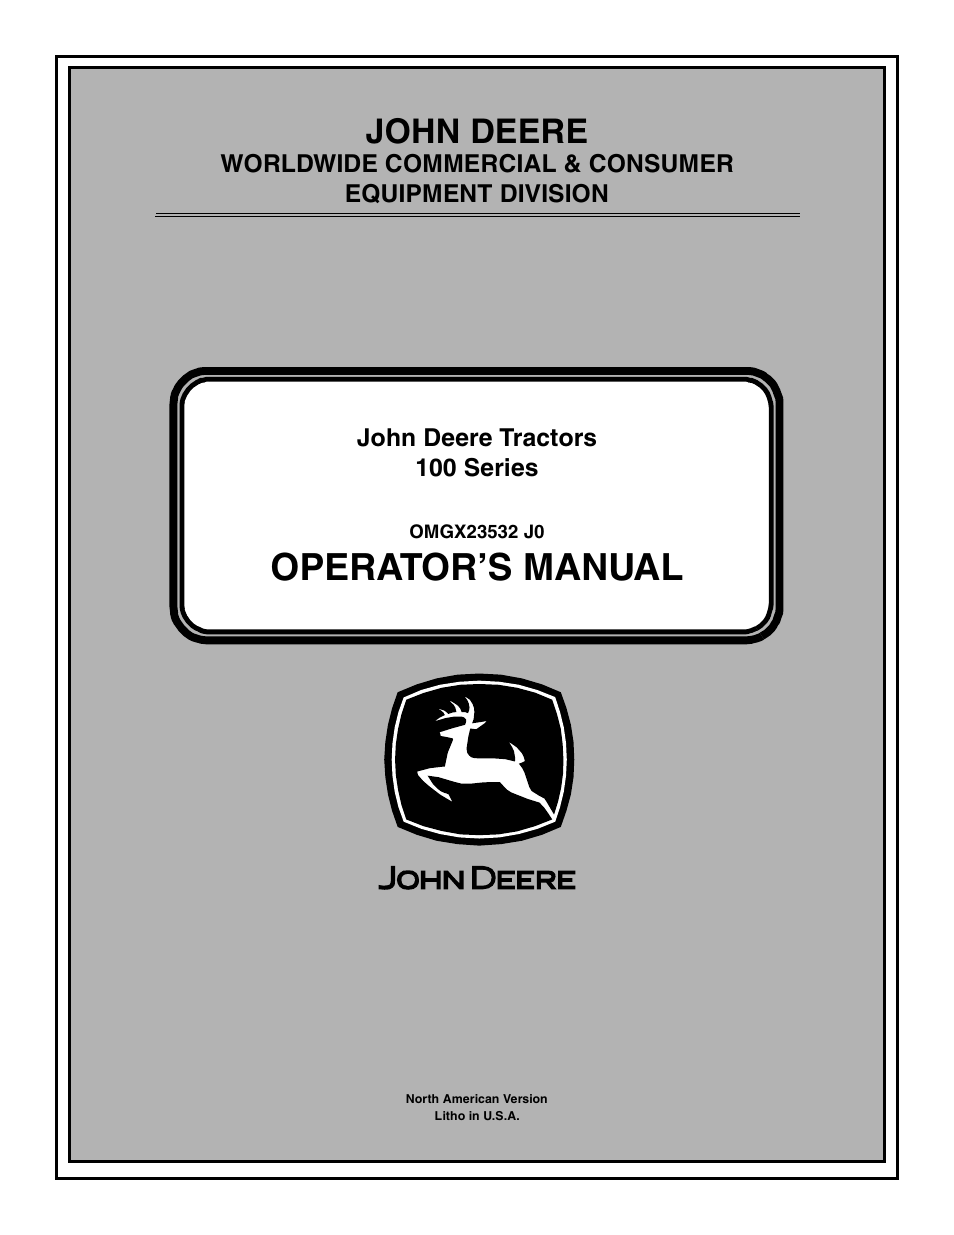 john deere lawn mower owner s manual best deer photos water